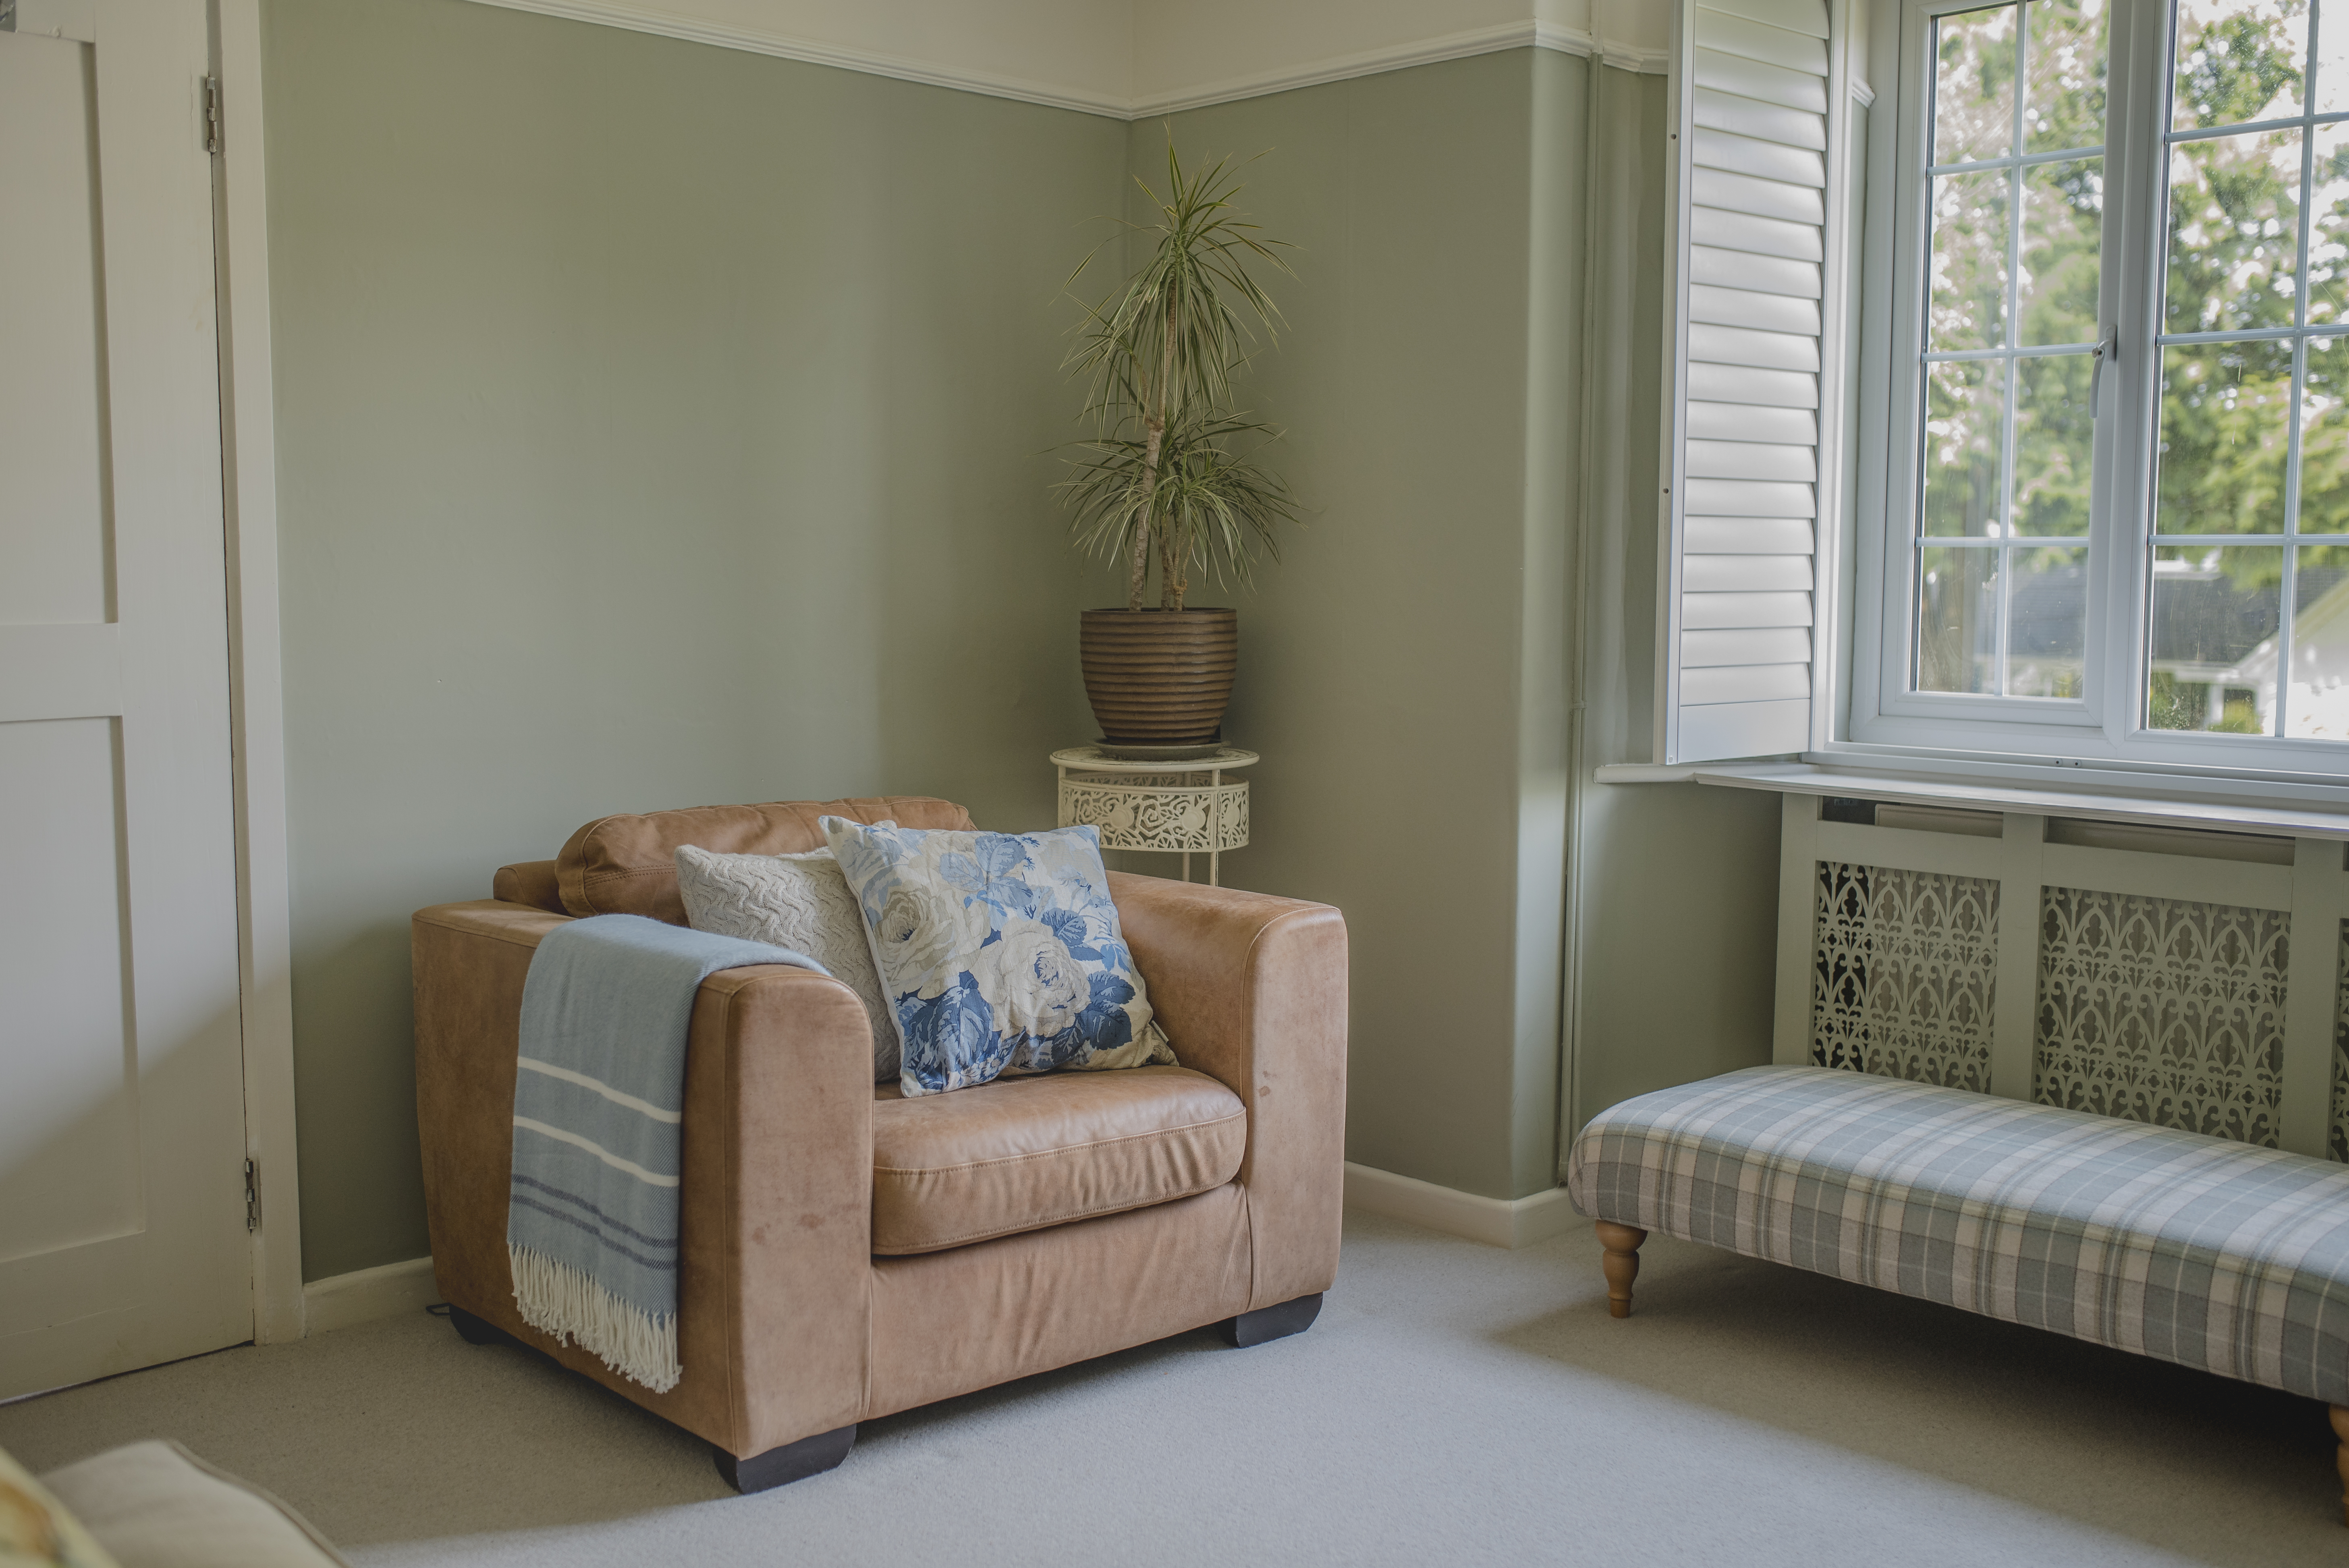 A room painted in a calming soft green colour.